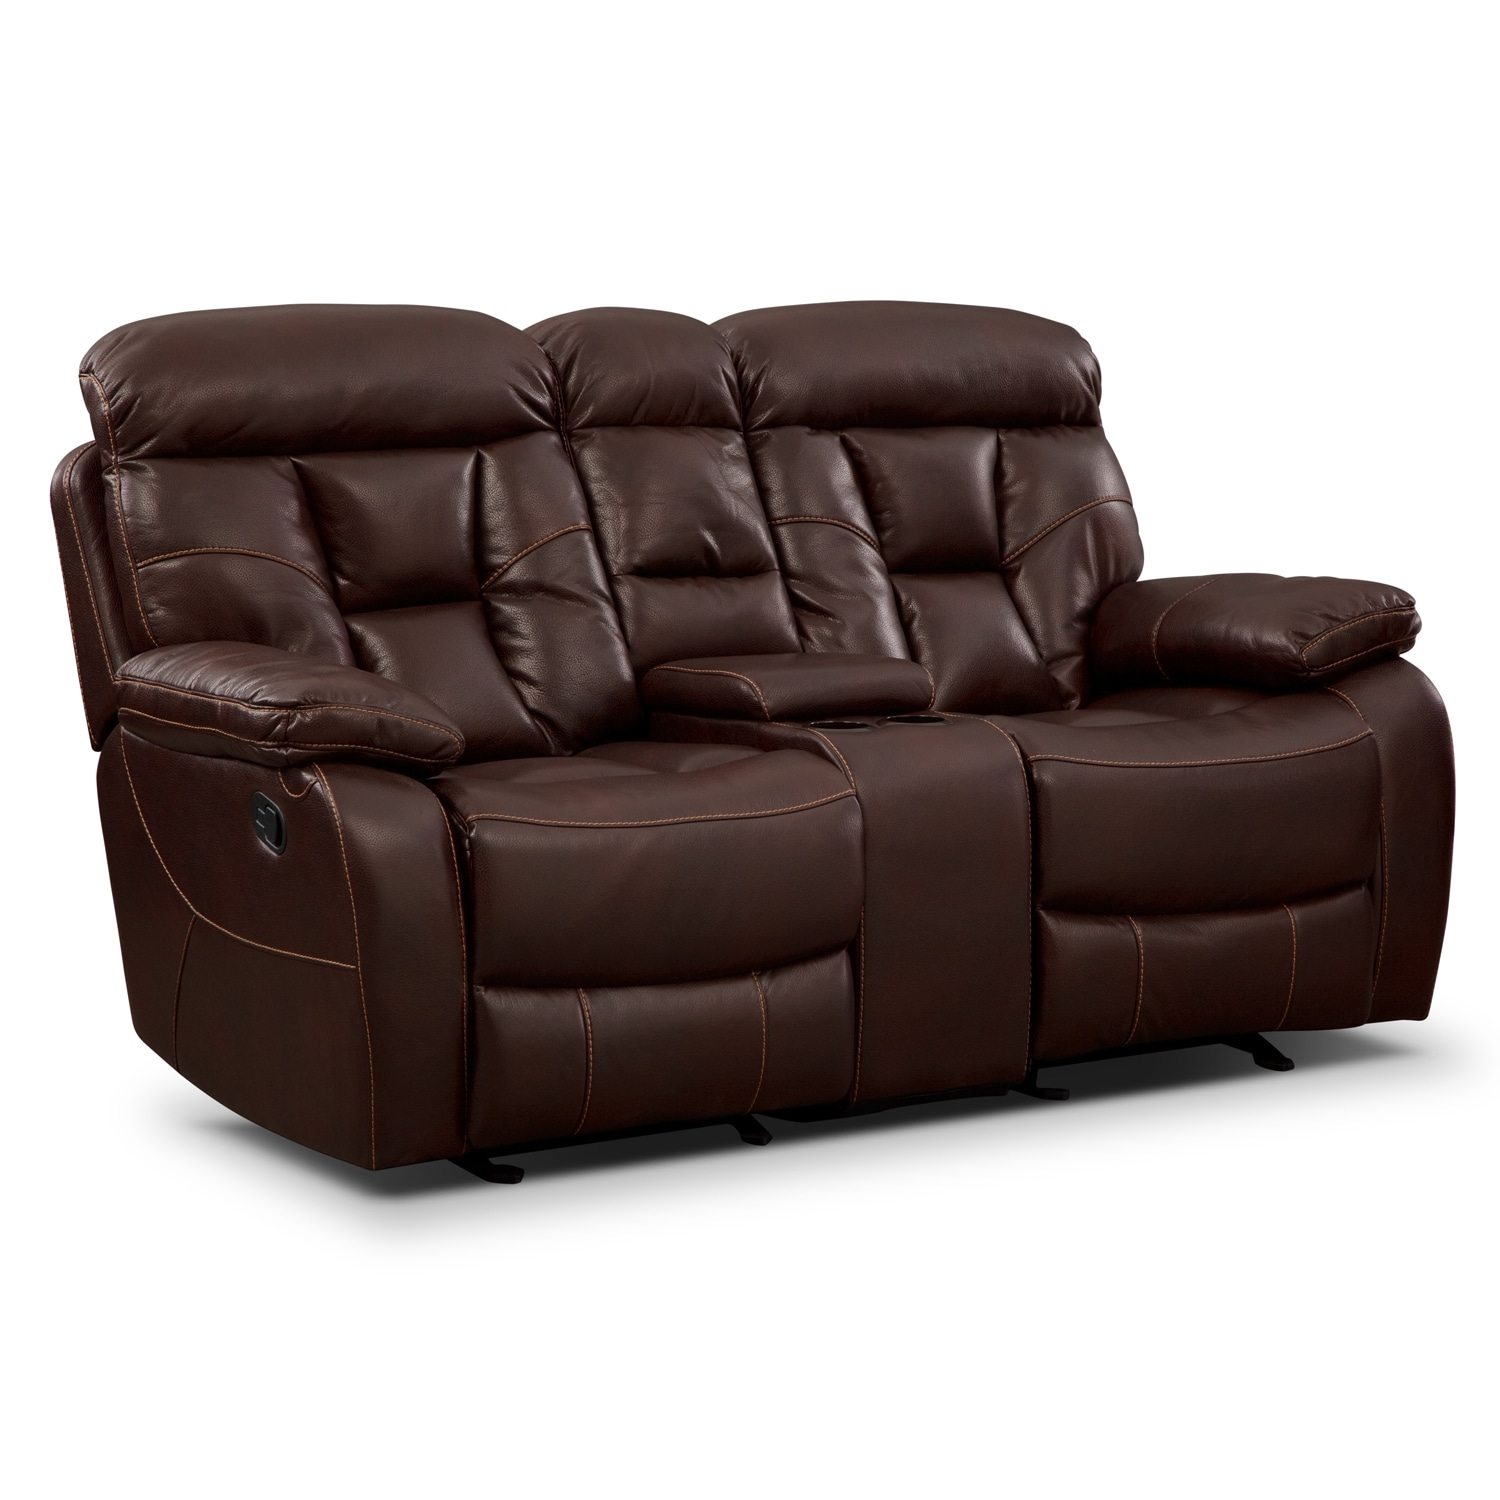 Dakota Gliding Reclining Loveseat with Console - Java